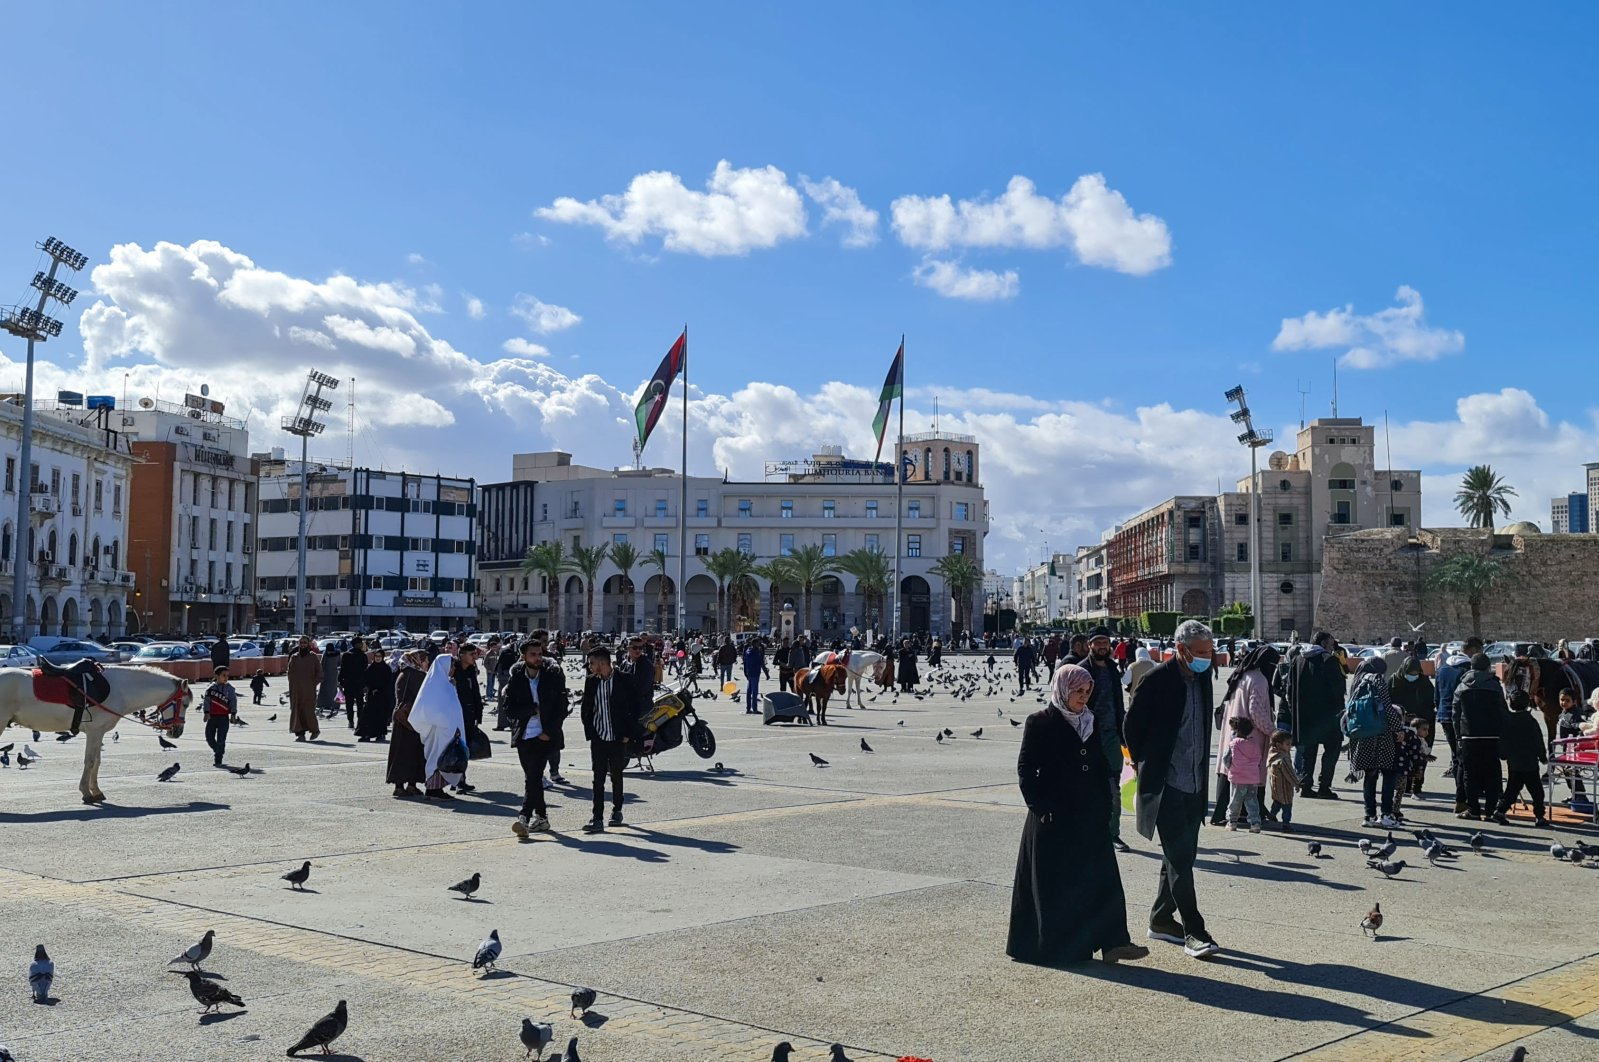 People walk in the Martyr's Square in the capital Tripoli, Libya, Jan. 19, 2021. (AFP Photo)